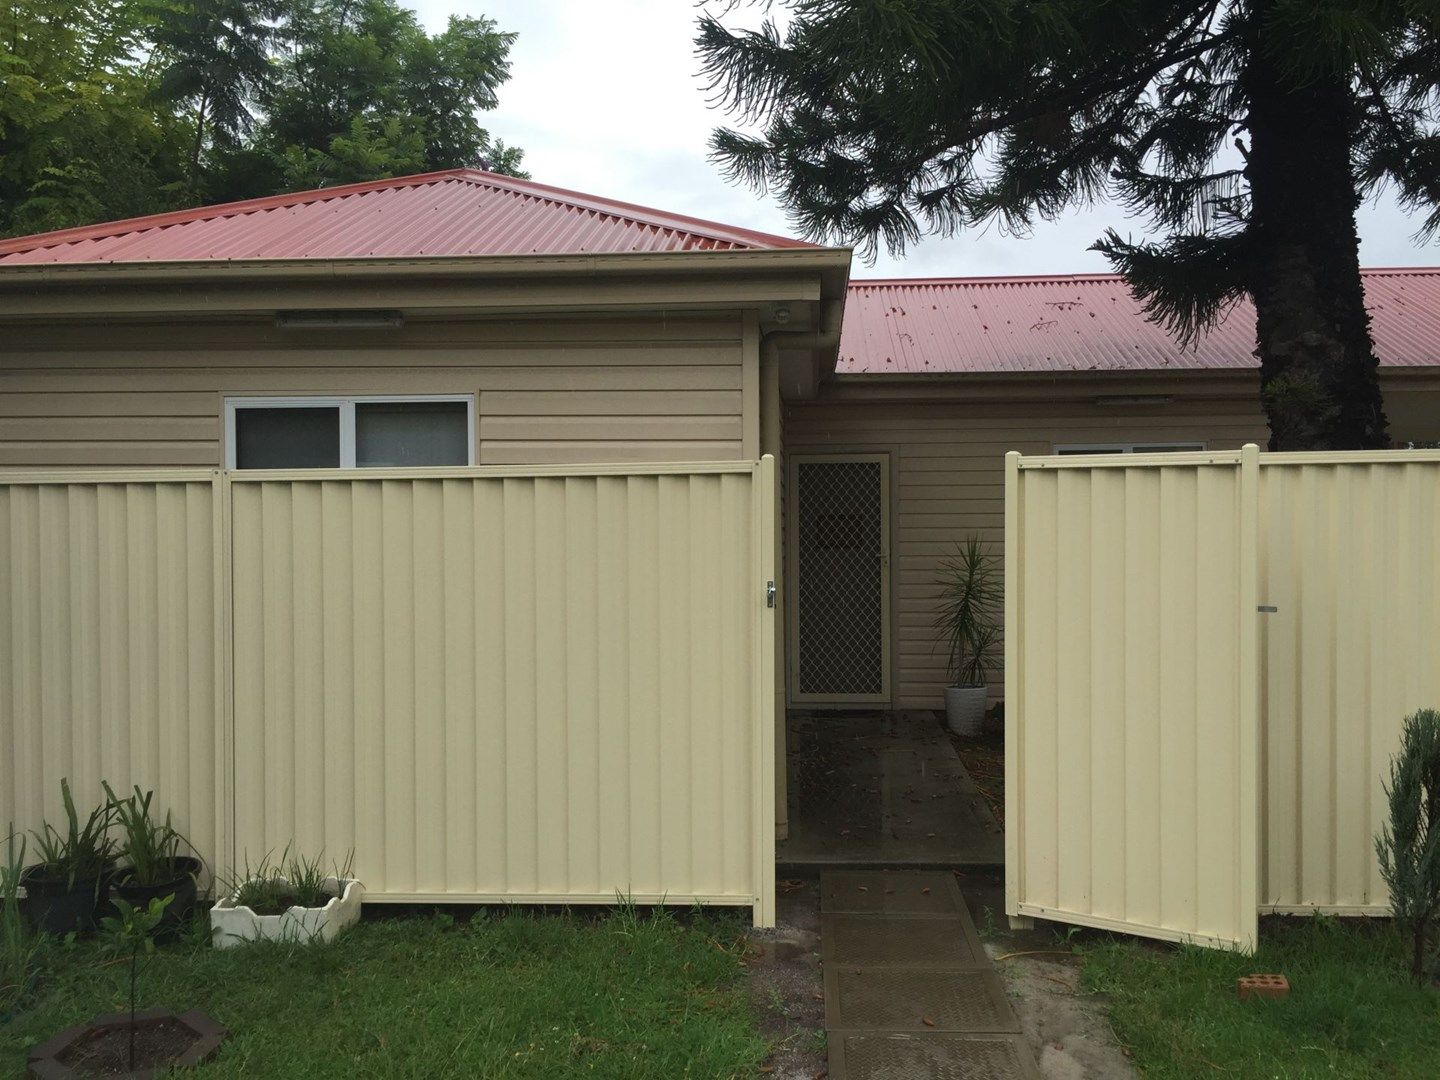 143A Lackey Street, Merrylands NSW 2160, Image 0